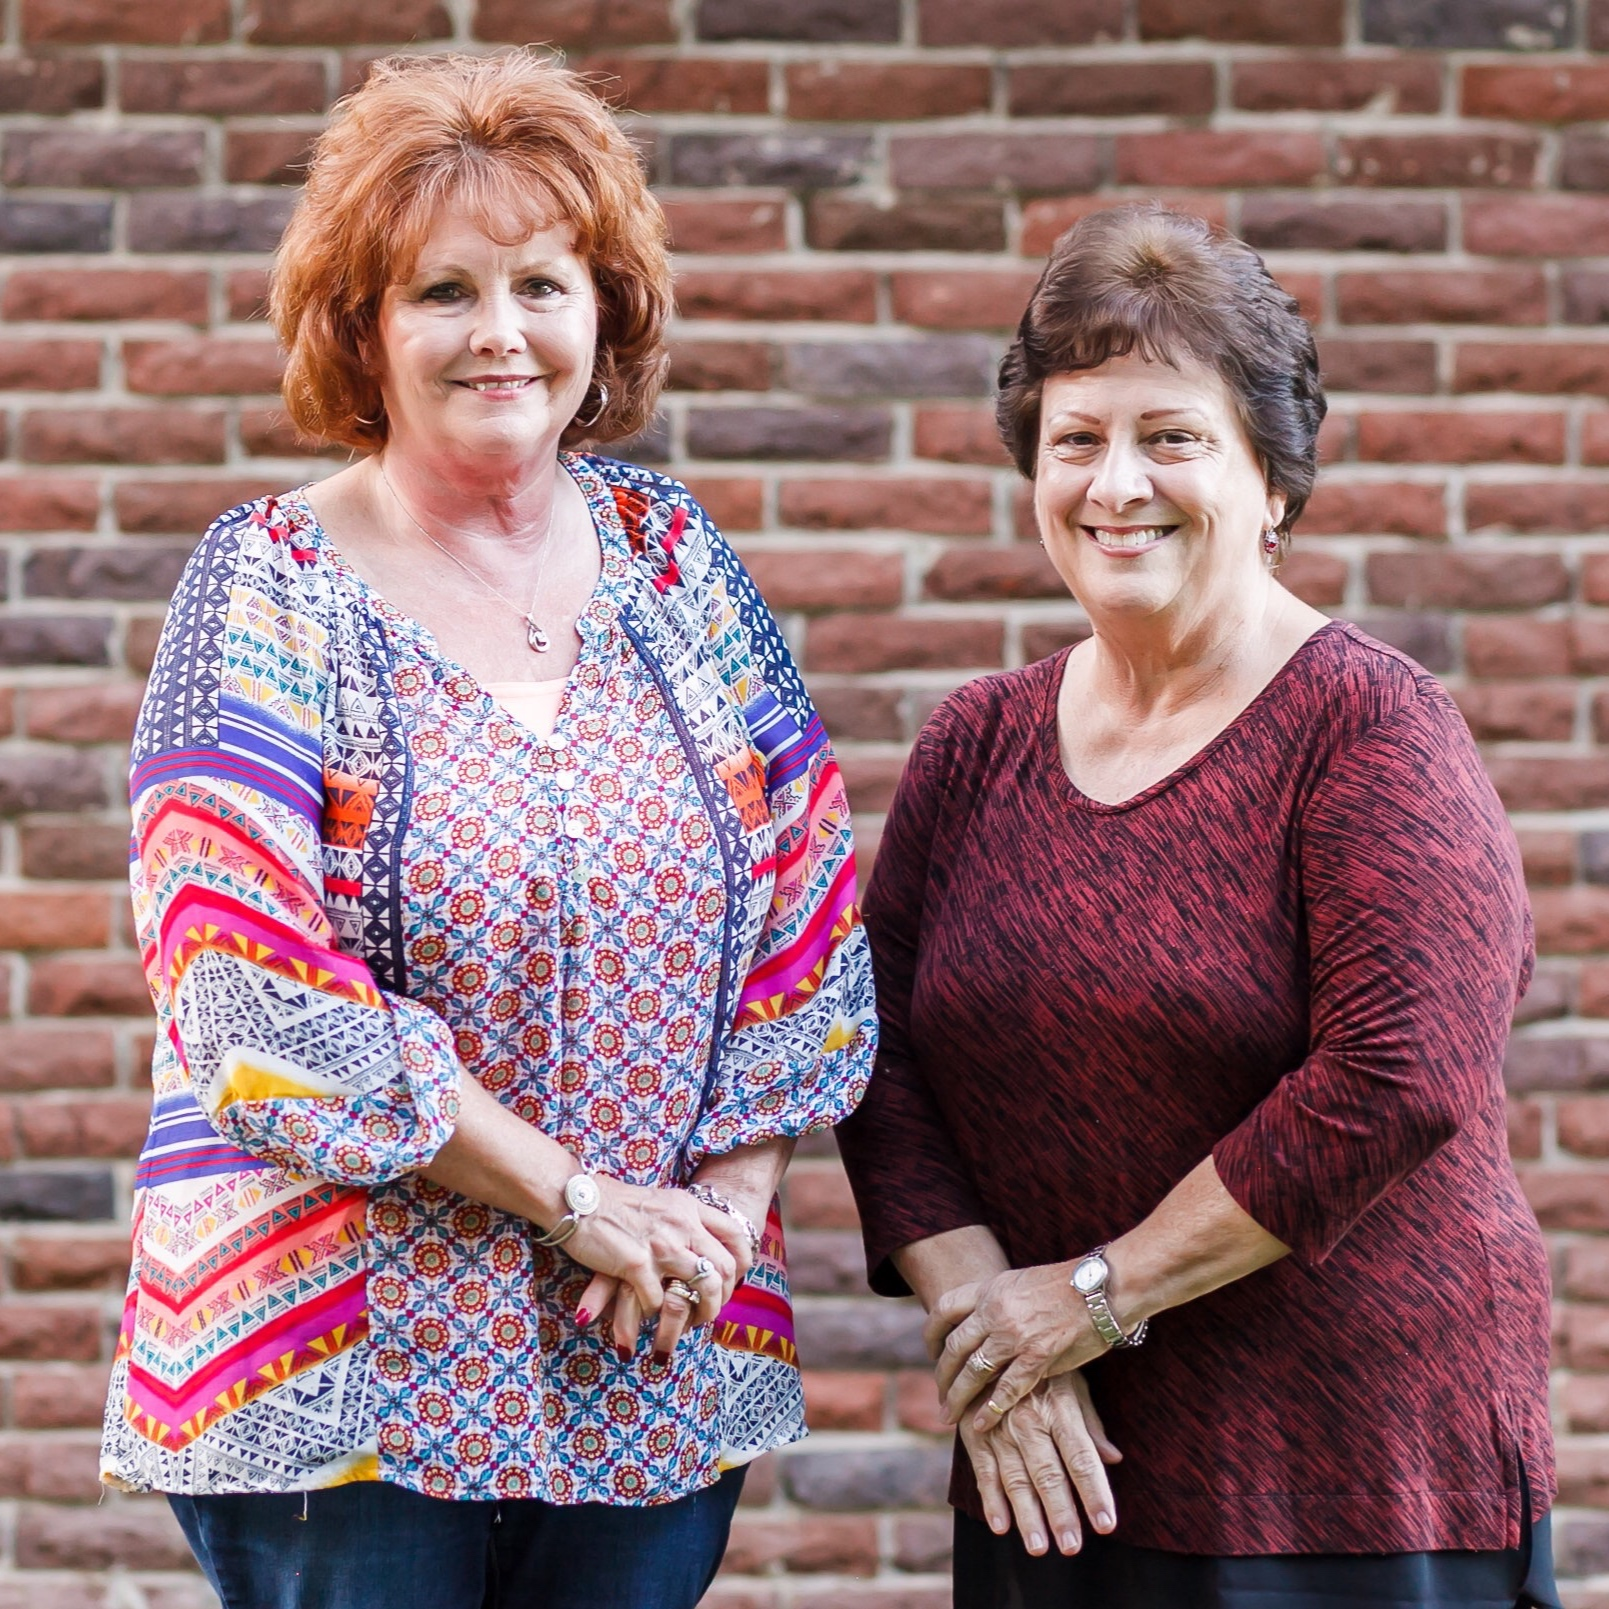 Community Care - Gail Wilkins and Janice Roberts